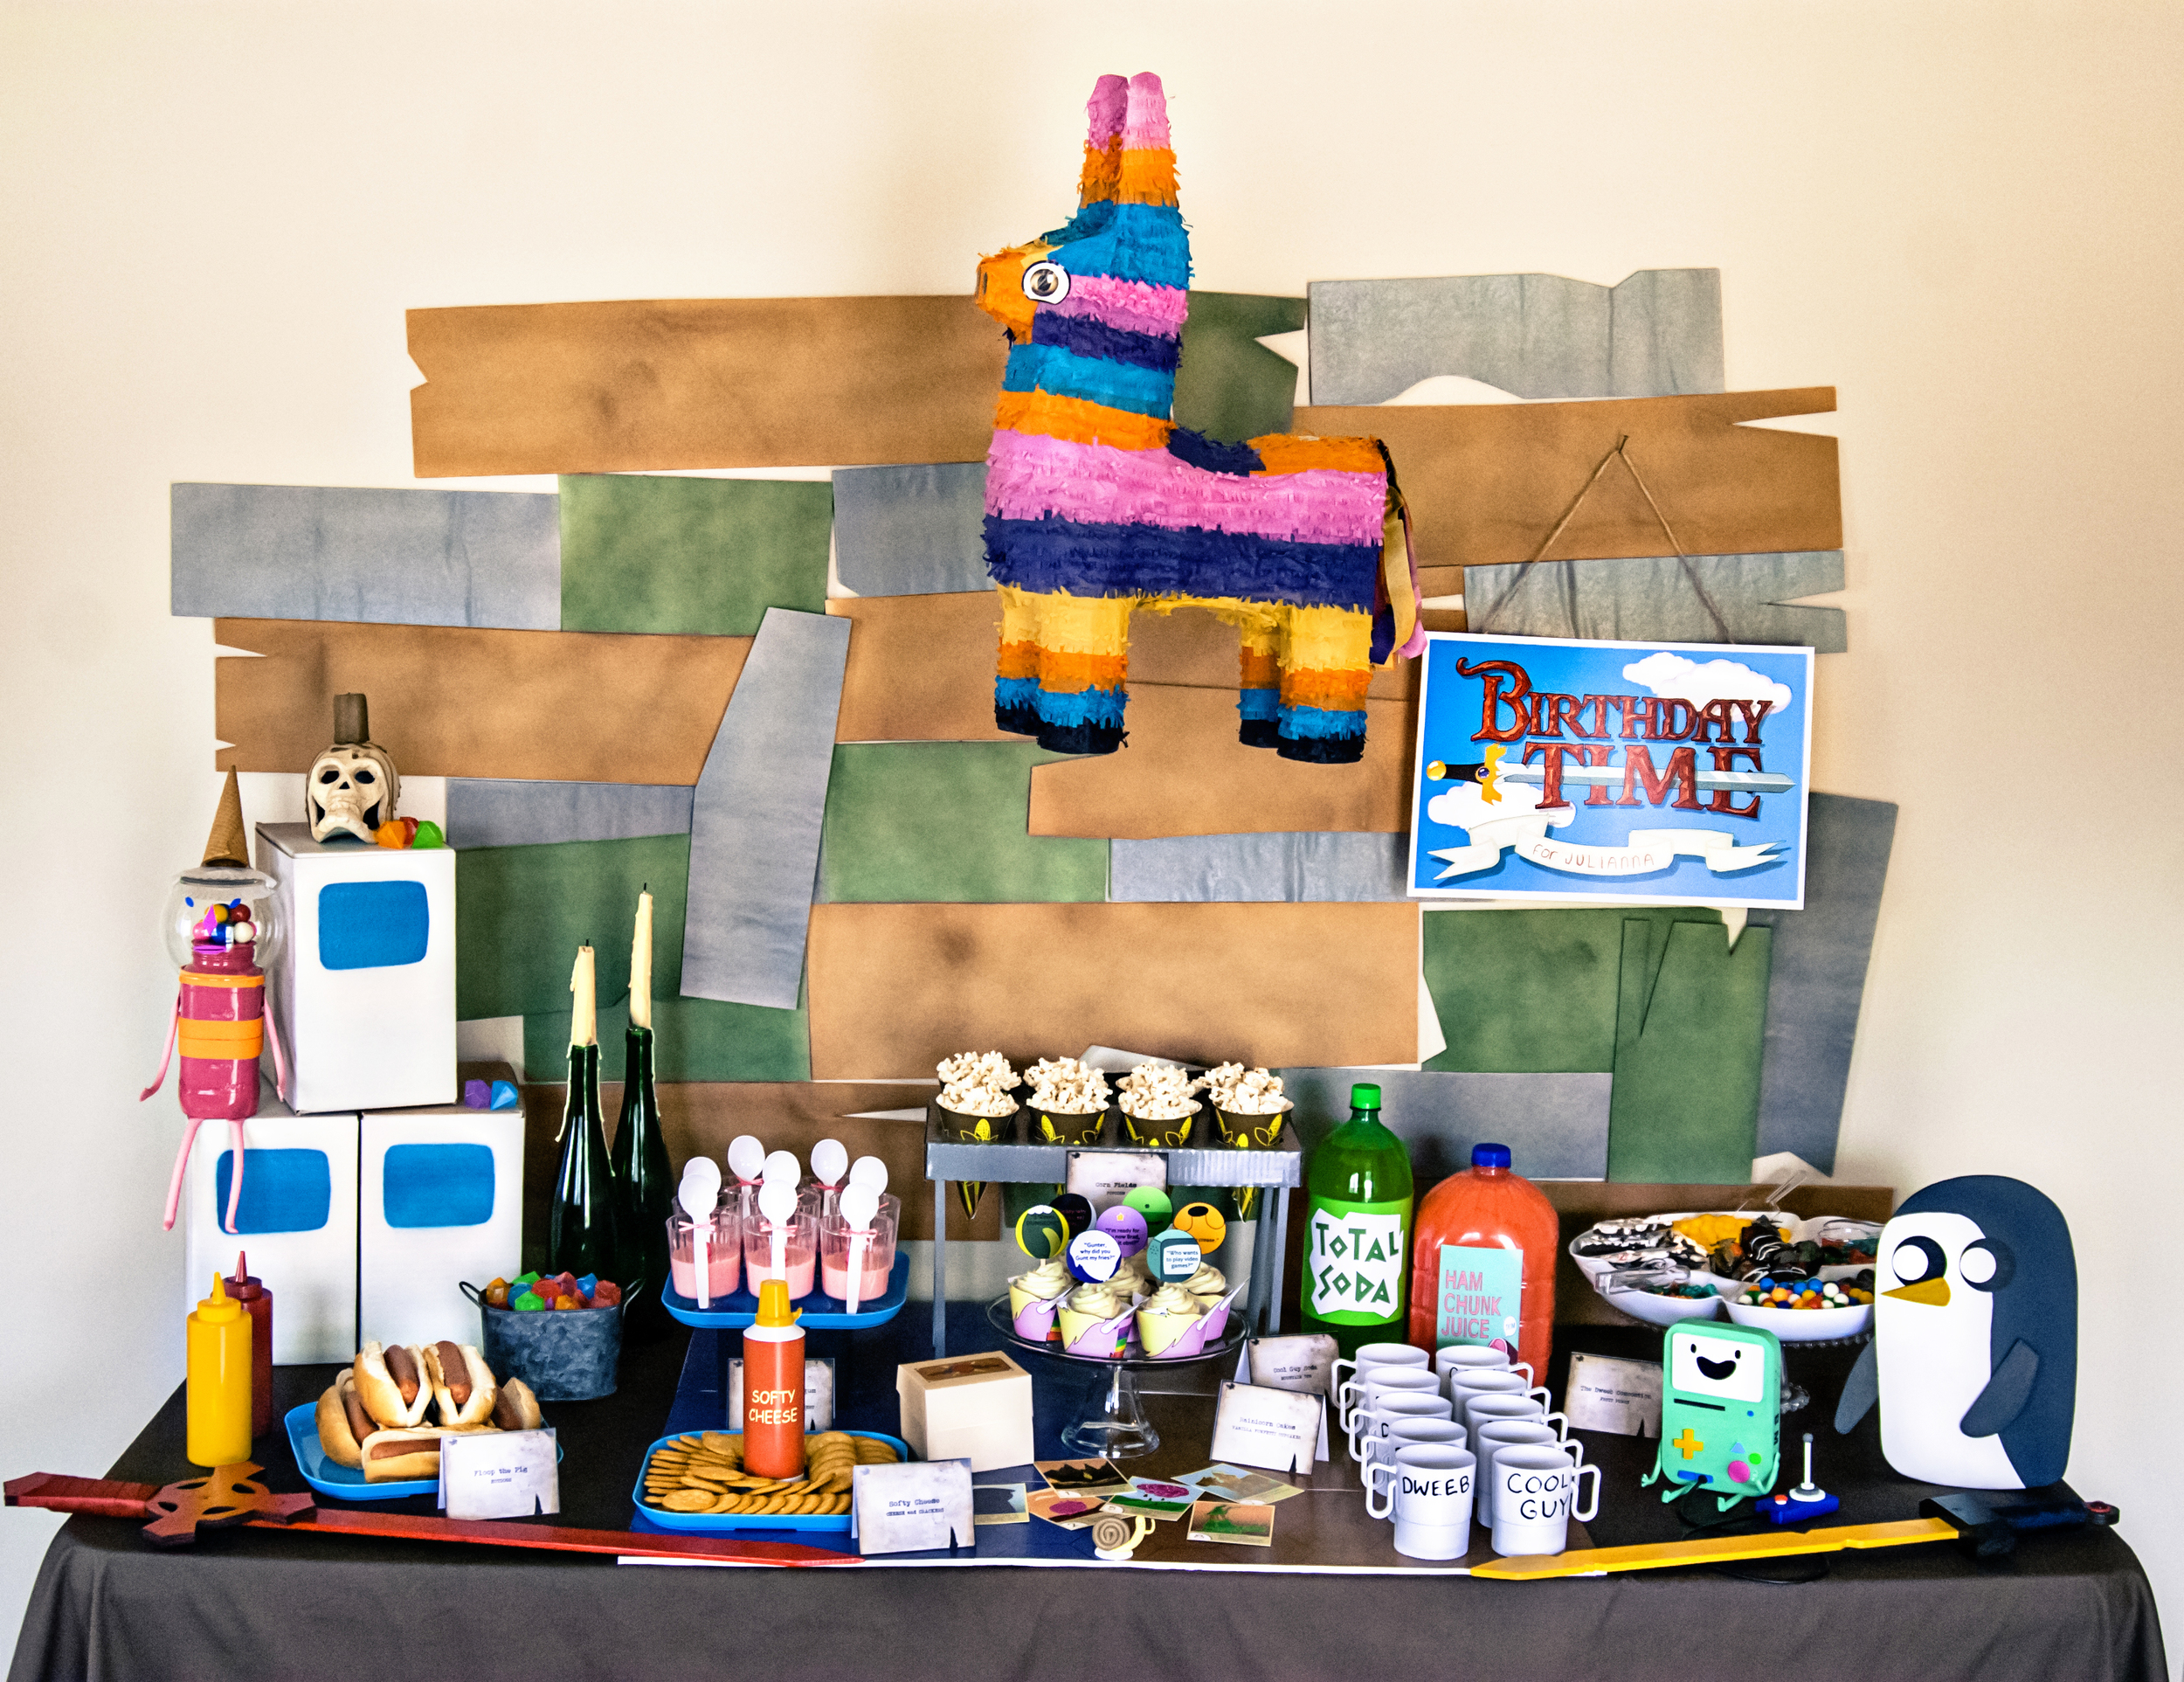 Adventure Time Birthday Party Ideas rom Hello My Sweet